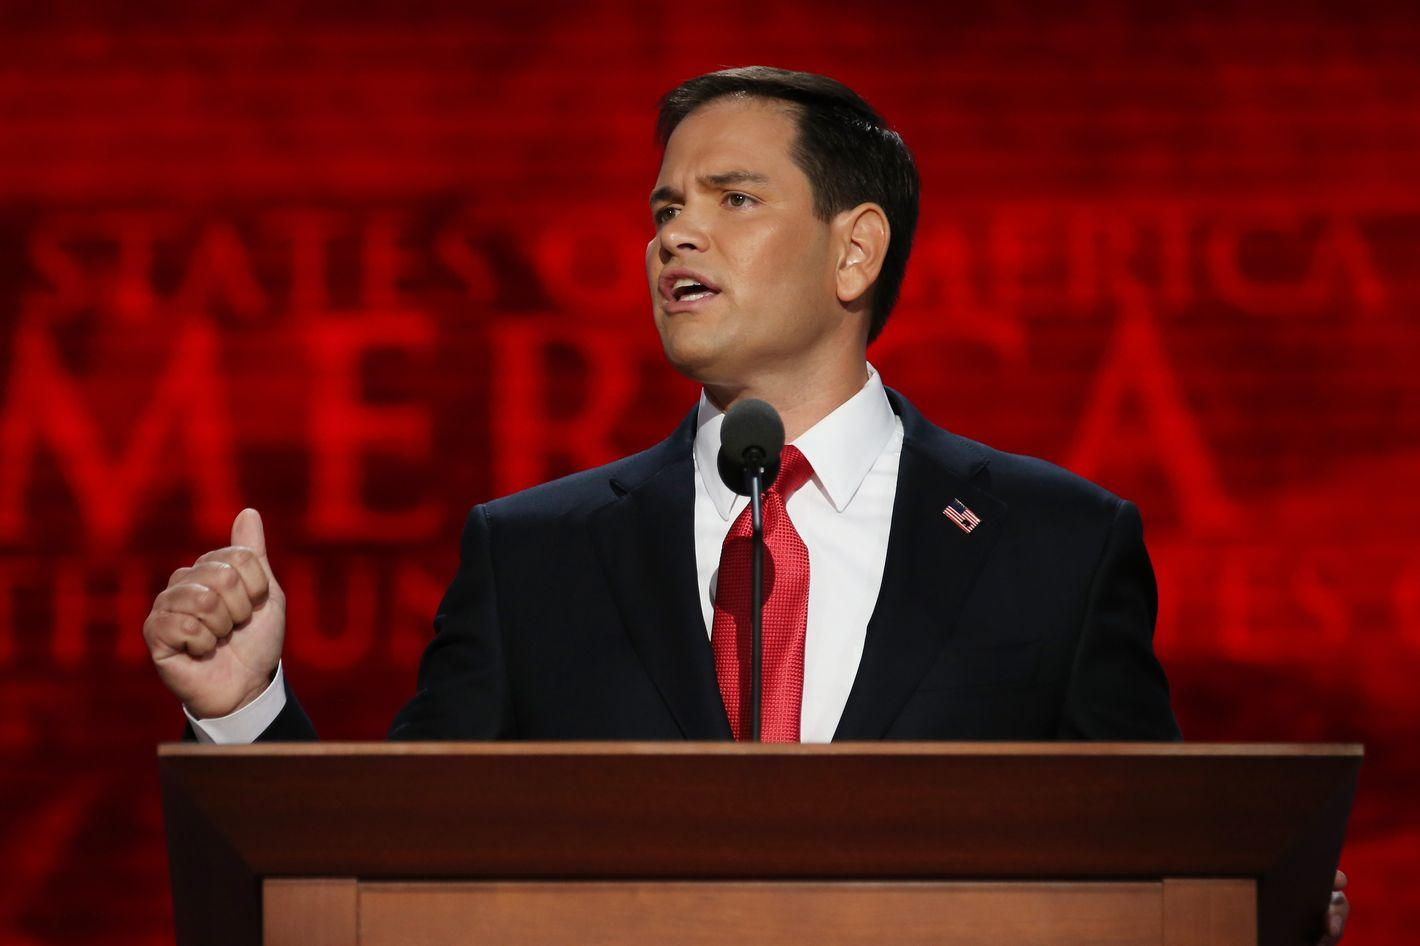 TAMPA, FL - AUGUST 30:  U.S. Senator Marco Rubio (FL) speaks during the final day of the Republican National Convention at the Tampa Bay Times Forum on August 30, 2012 in Tampa, Florida. Former Massachusetts Gov. Mitt Romney was nominated as the Republican presidential candidate during the RNC which will conclude today.  (Photo by Chip Somodevilla/Getty Images)